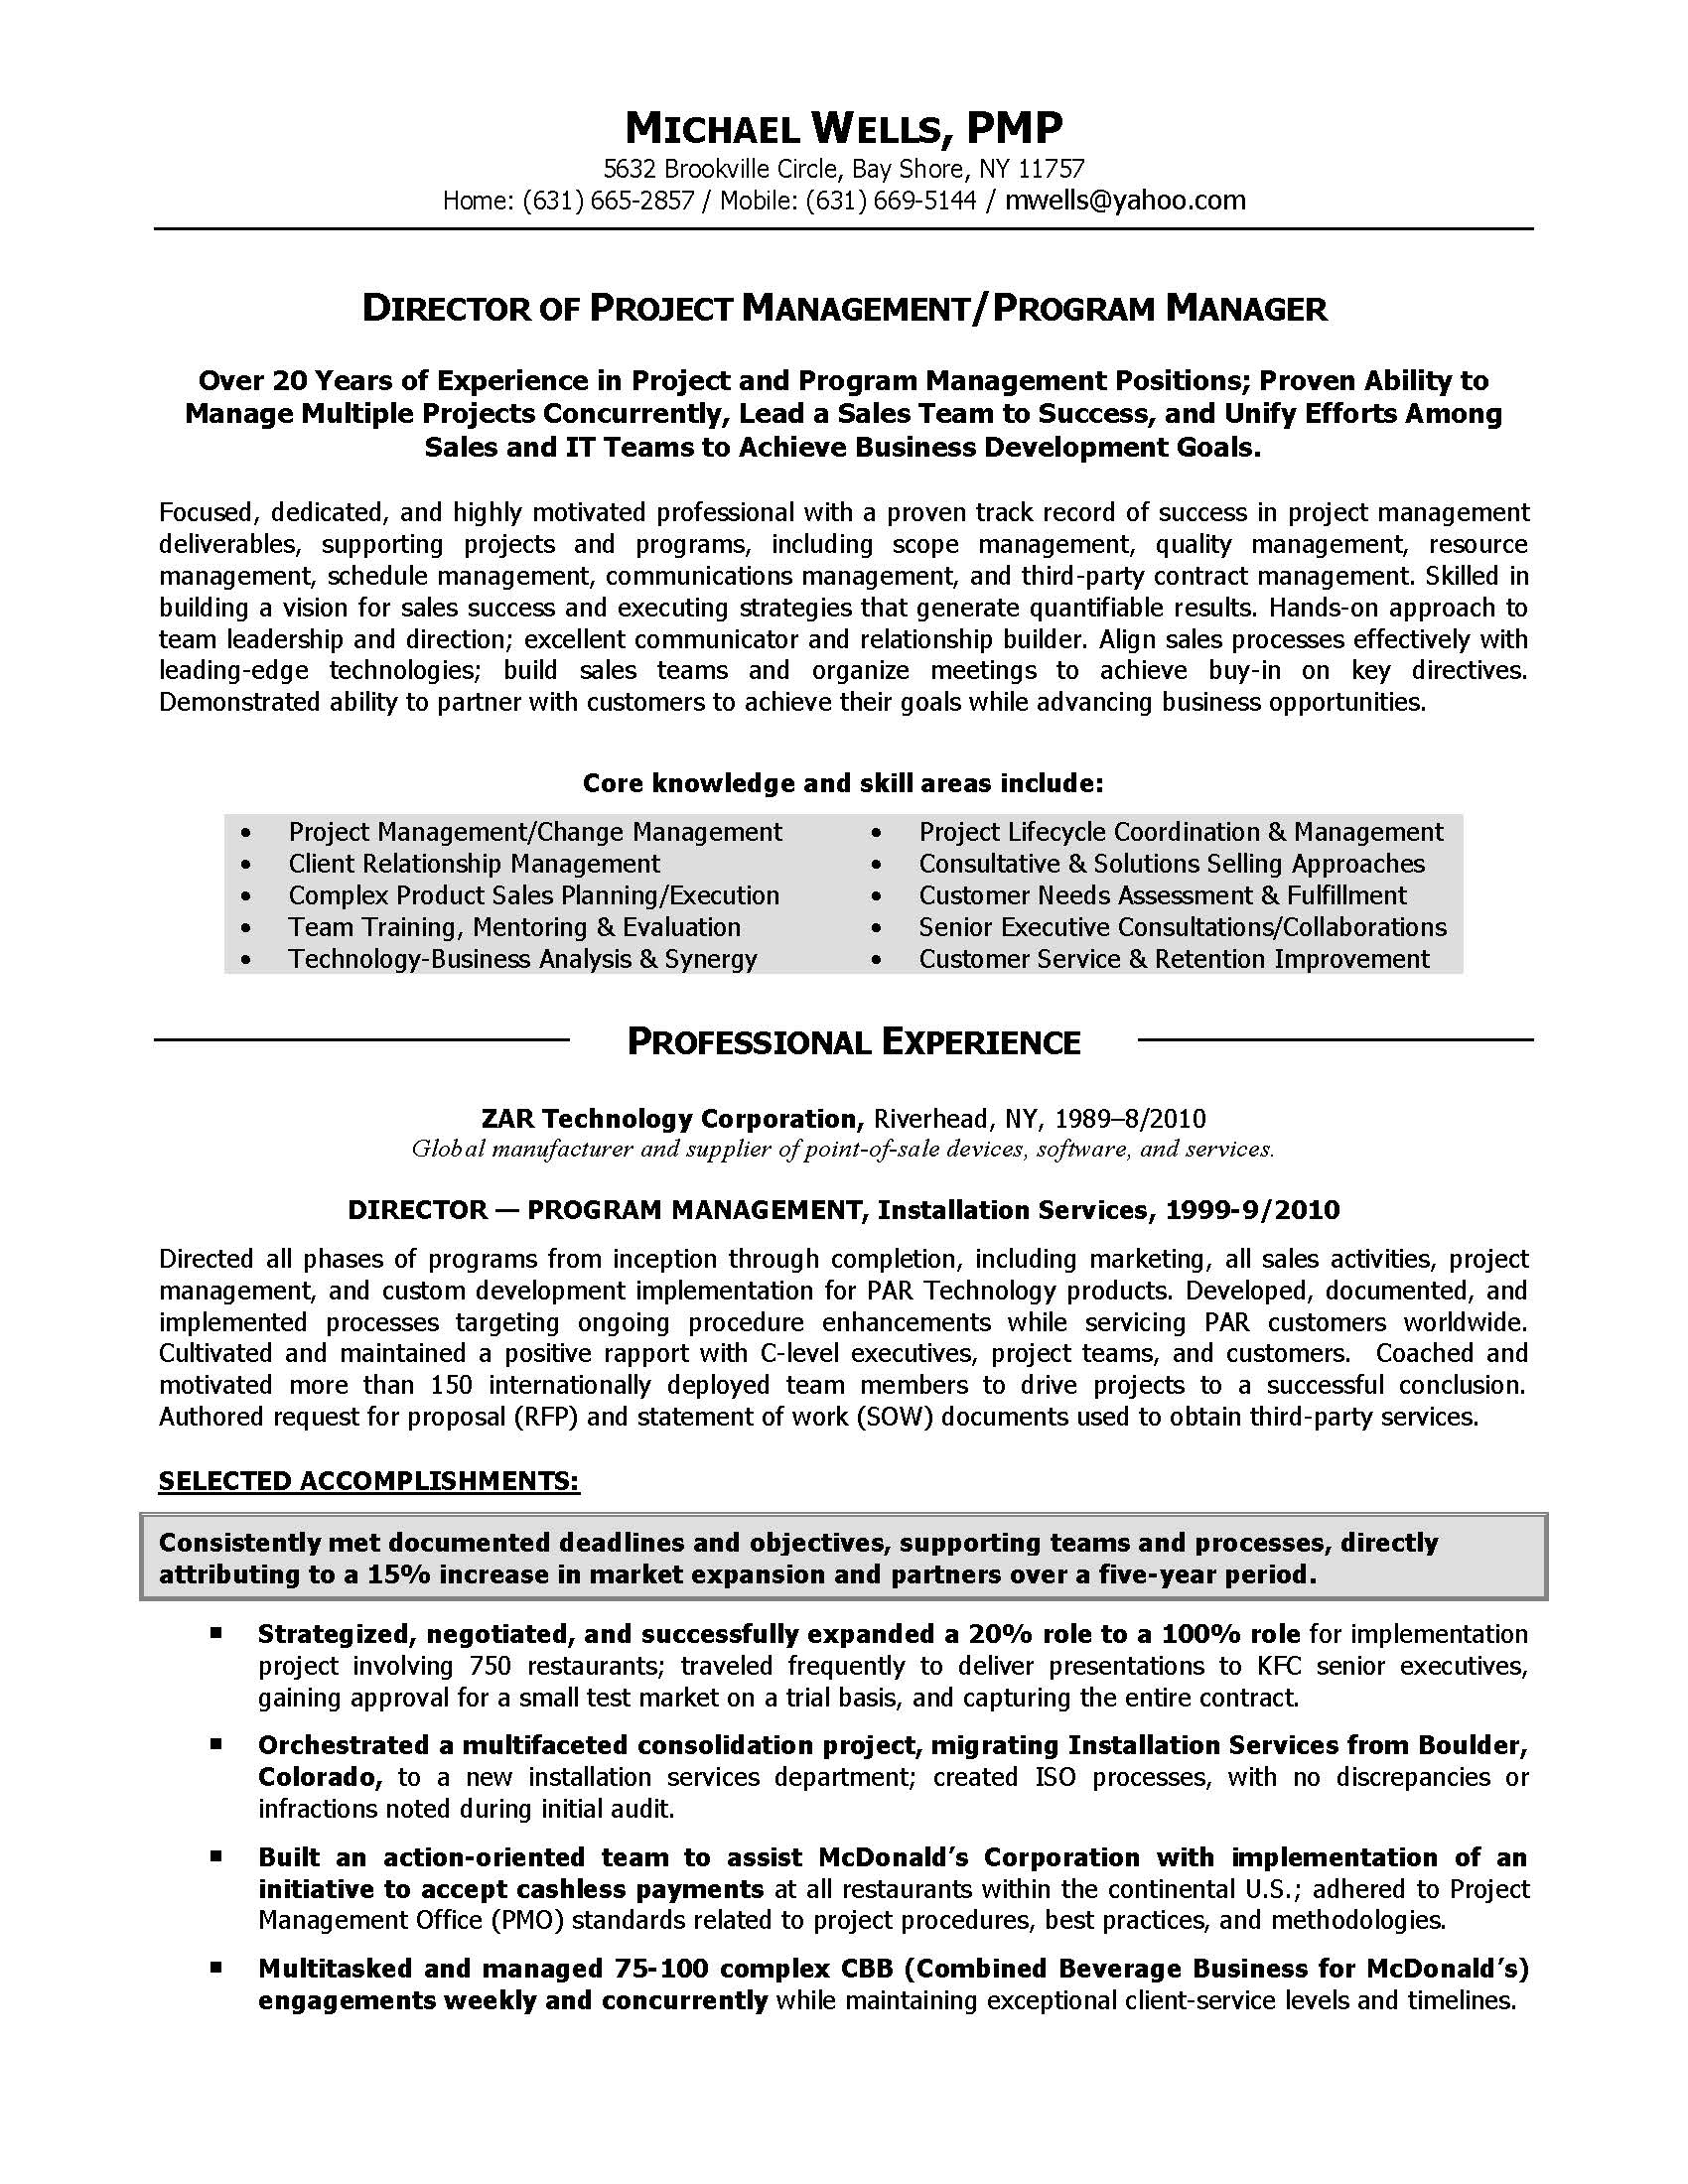 sample resume for managing director position - resume samples elite resume writing